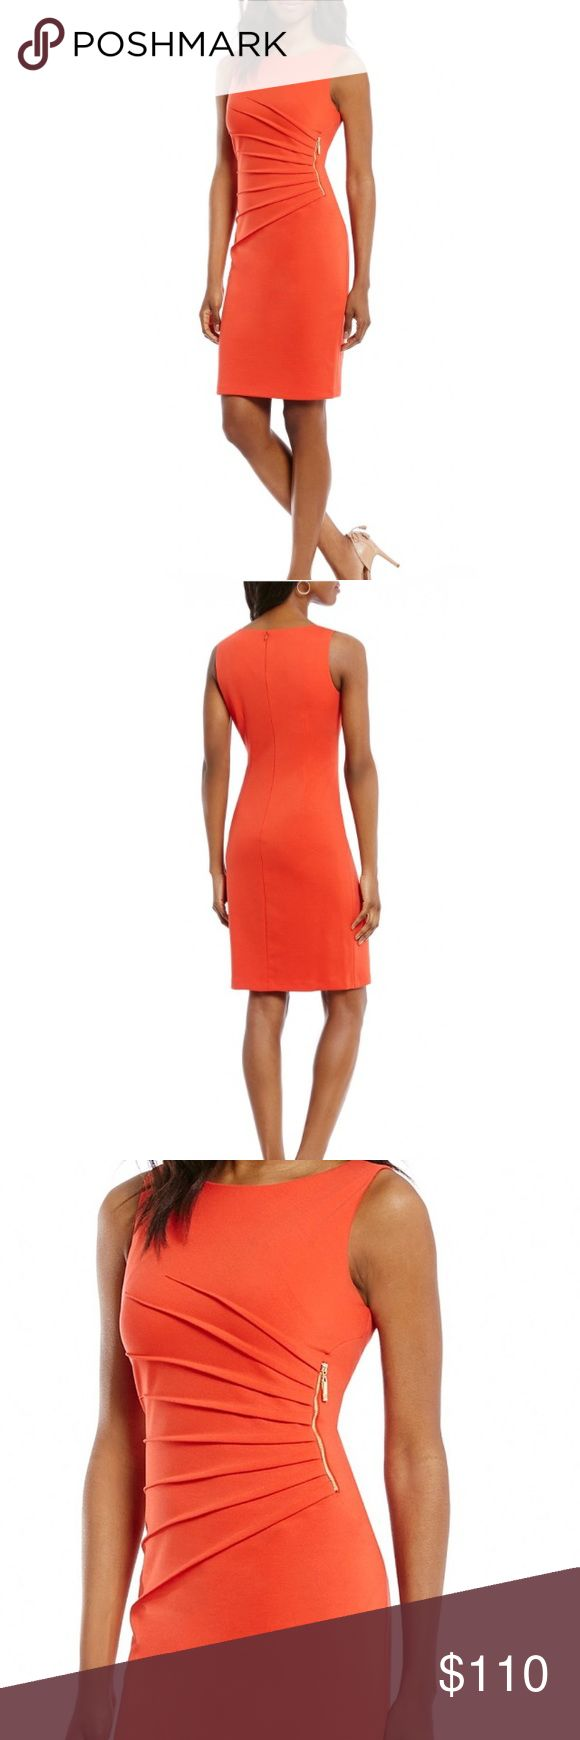 """Ivanka Trumpe ORANGE Dress NEW EASTER DRESSIvanka Trump ORANGE Dress NEW. The Color here is """"Strawberry"""" (Orange)❤️BRAND NEW. NEVER WORN MSRP $140. Absolutely stunning dress.  Has gold front side zipper-its nice.Soft material.  Pics do not capture how pretty it truly is. This color looks especially AMAZING w a TAN&tan heels---I will post pics of actual dress(es) upon req or asap Ty 4looking.  I'm looking for other sizes as well but hard to find. You are welcome to make an offer. I am…"""